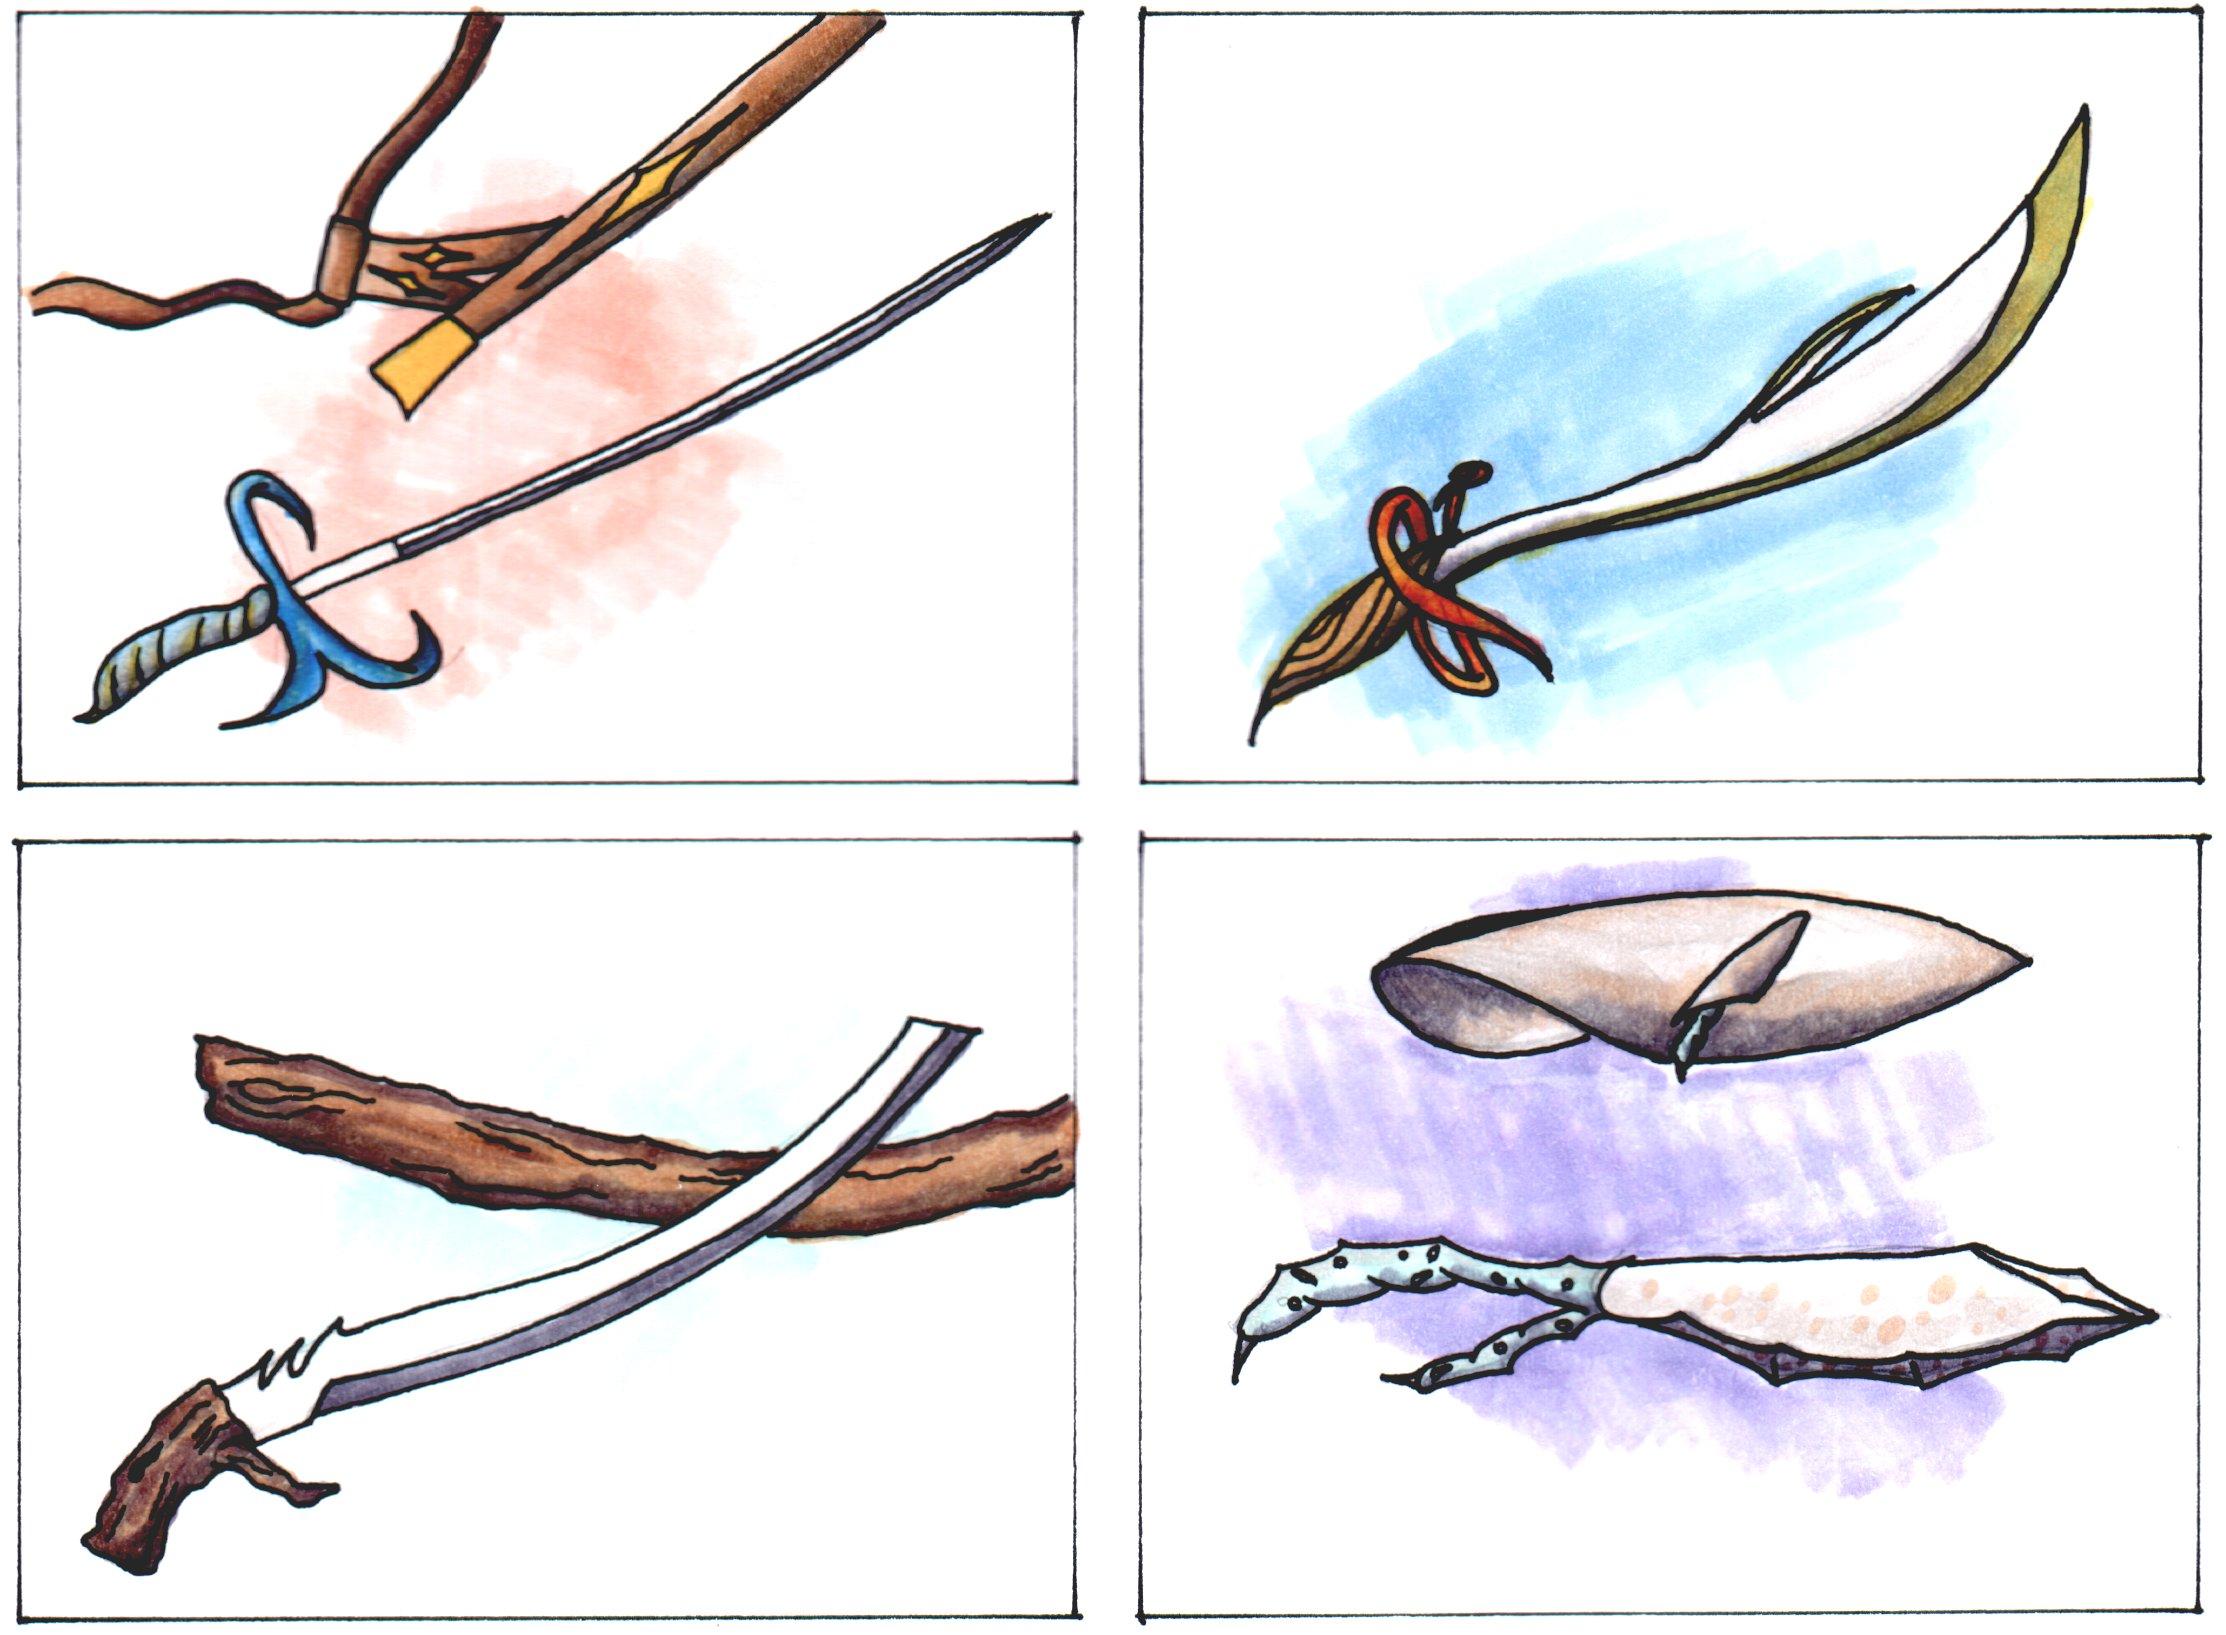 Some various ideas for 'Elven Swords', in Trading Card Style. Pencil, Ink and Copics marker.